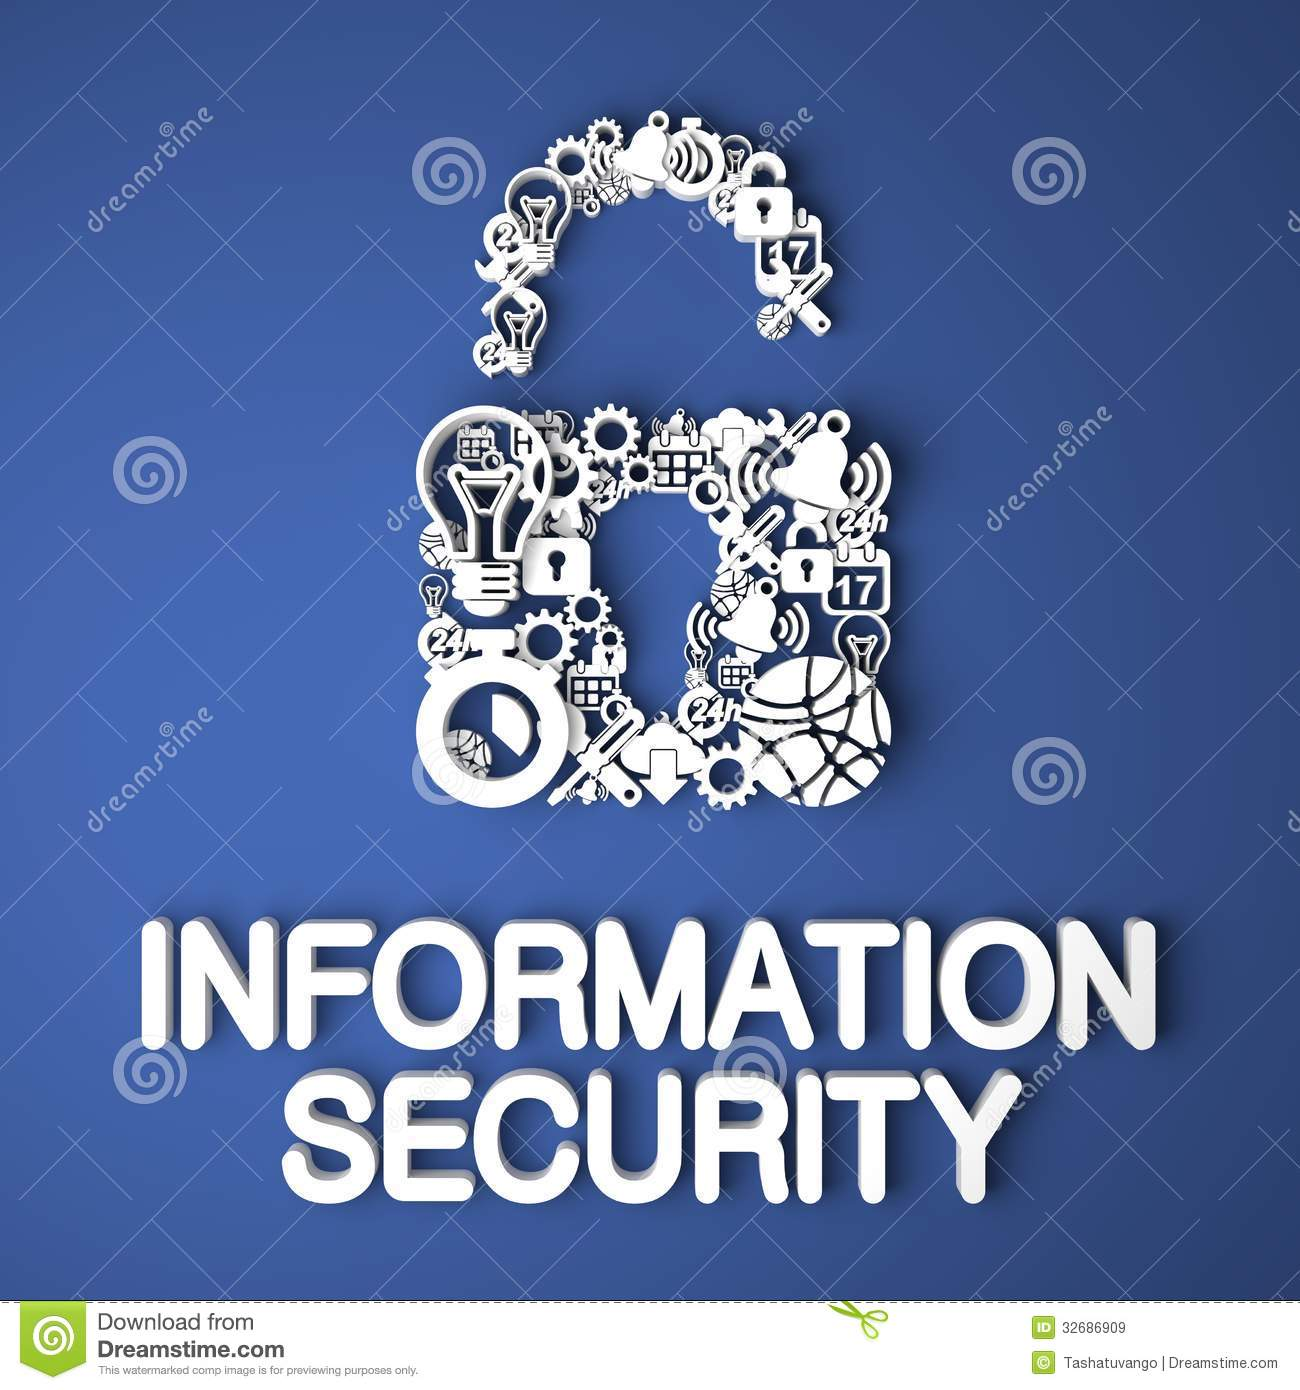 information security wallpaper - photo #33